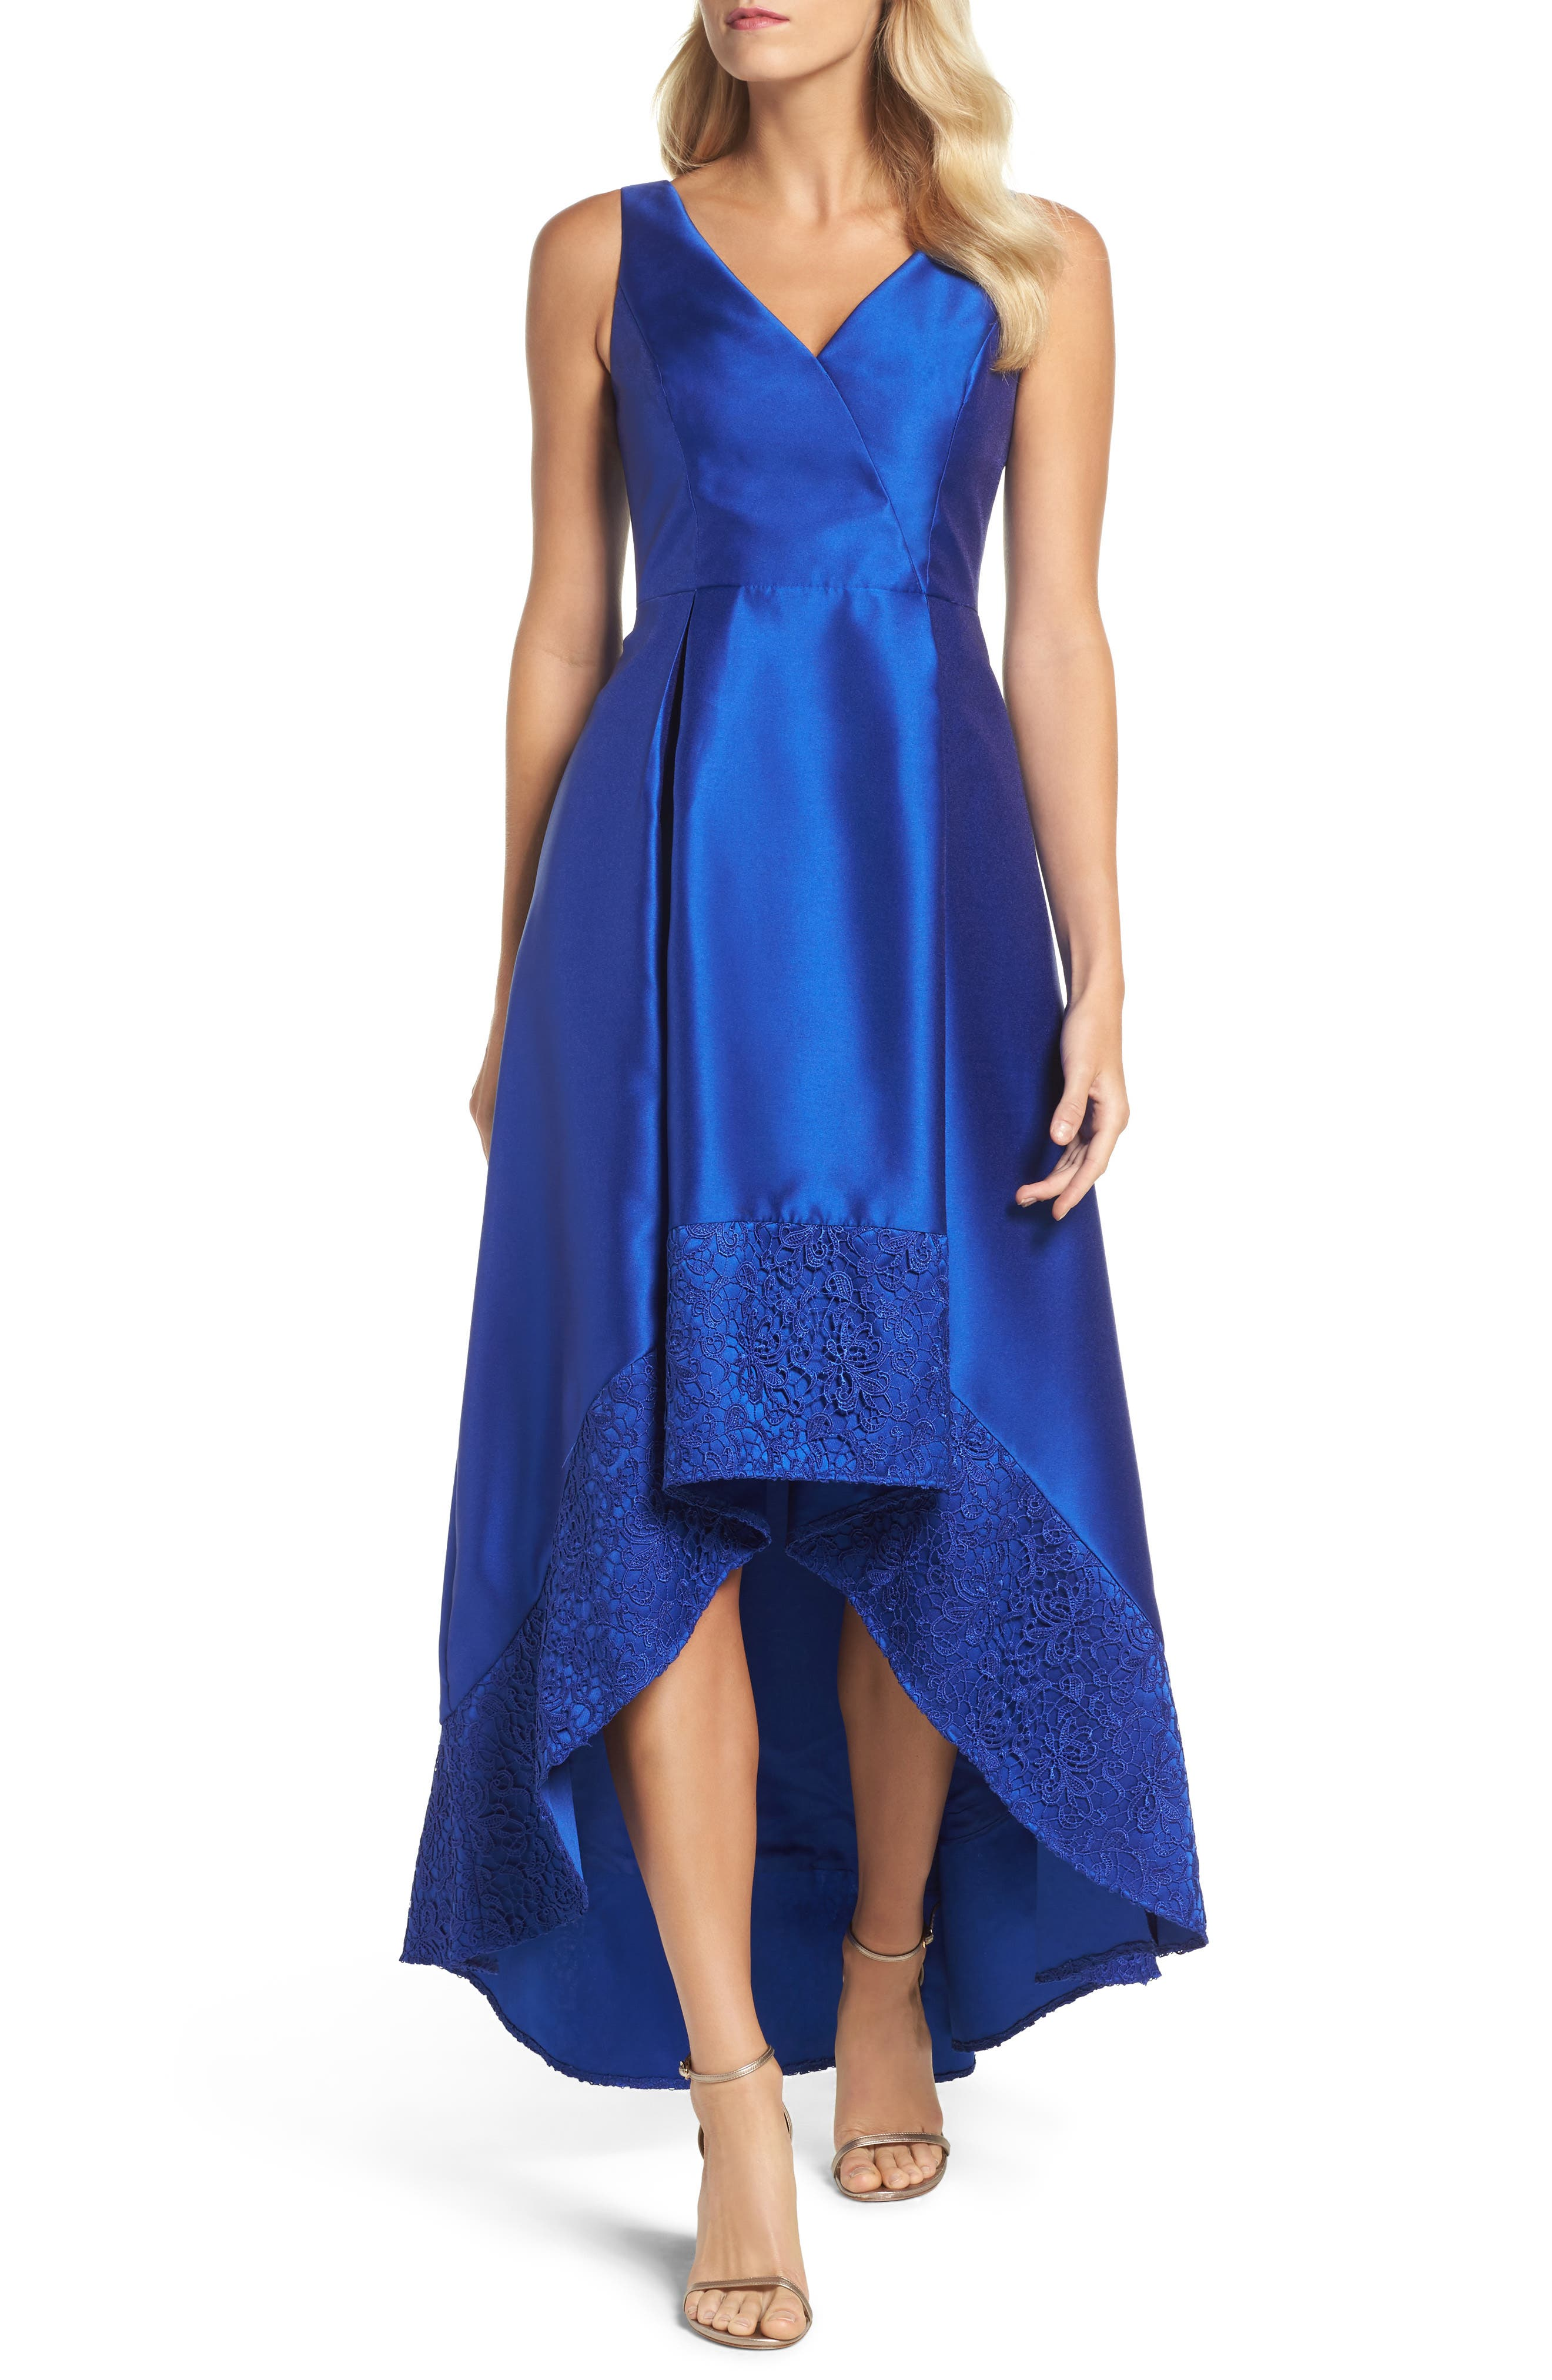 Alternate Image 1 Selected - Adrianna Papell Lace Trim Mikado High/Low Gown